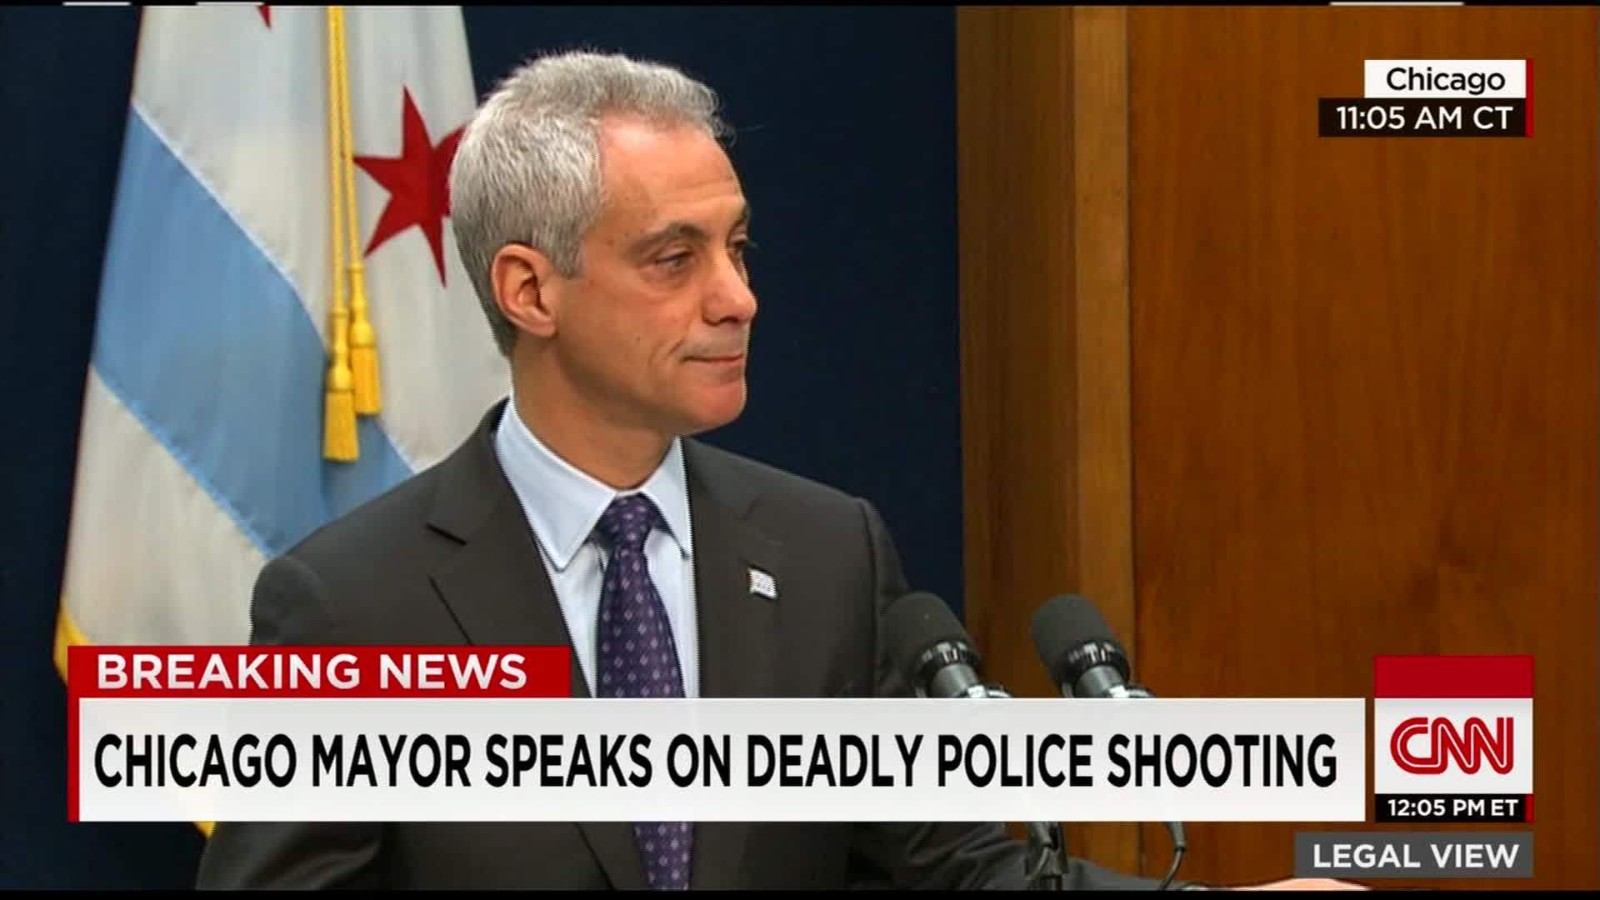 rahm emanuel rejects calls for resignation from or job rahm emanuel rejects calls for resignation from or job cnnpolitics com